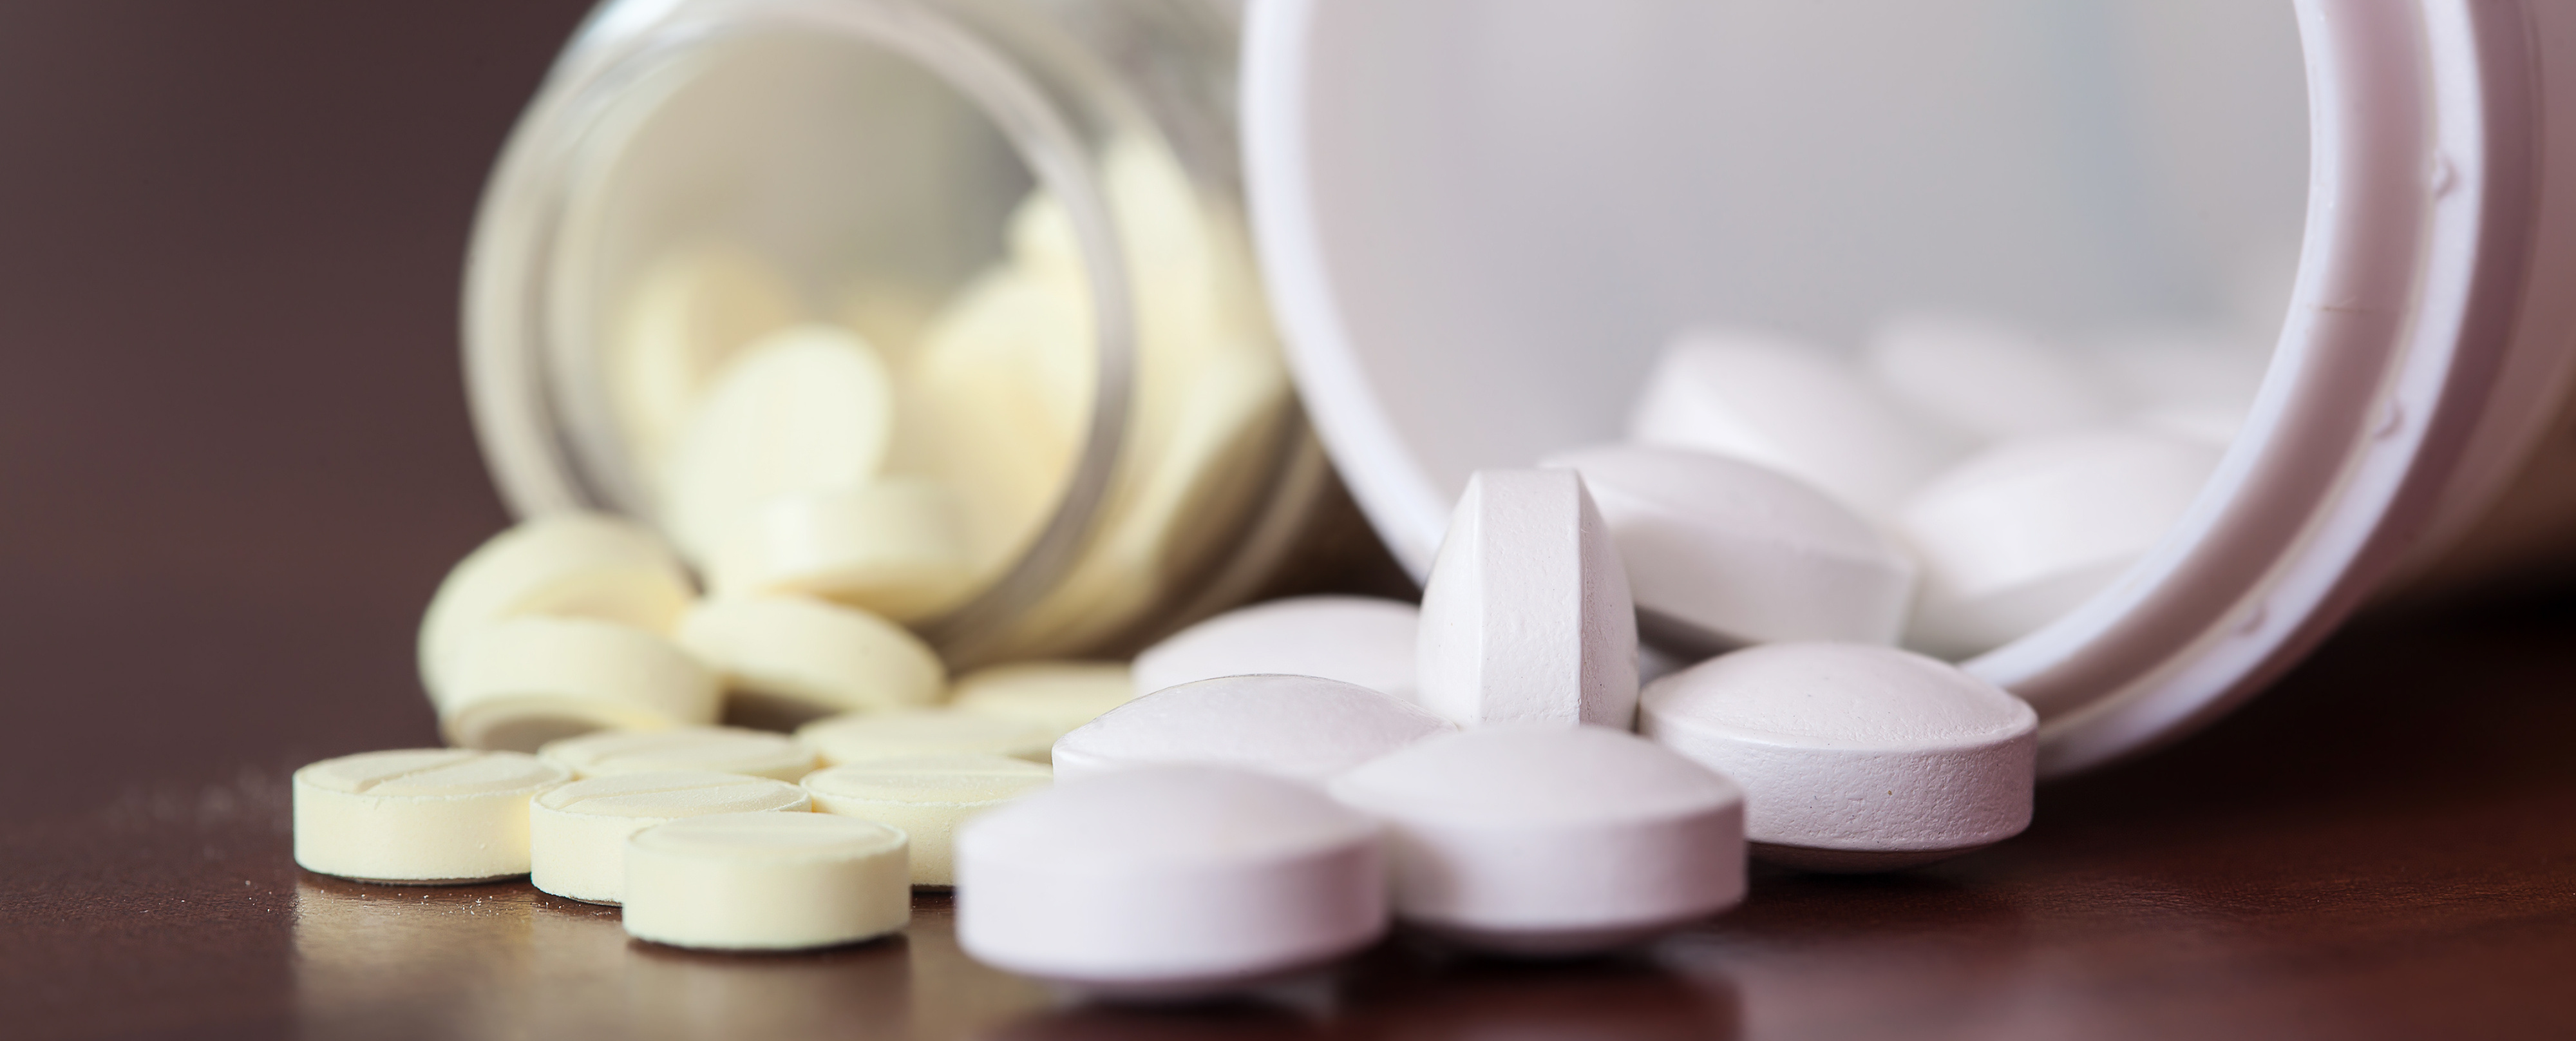 Aspirin: Preventing, Extending Lives of Those with Cancer